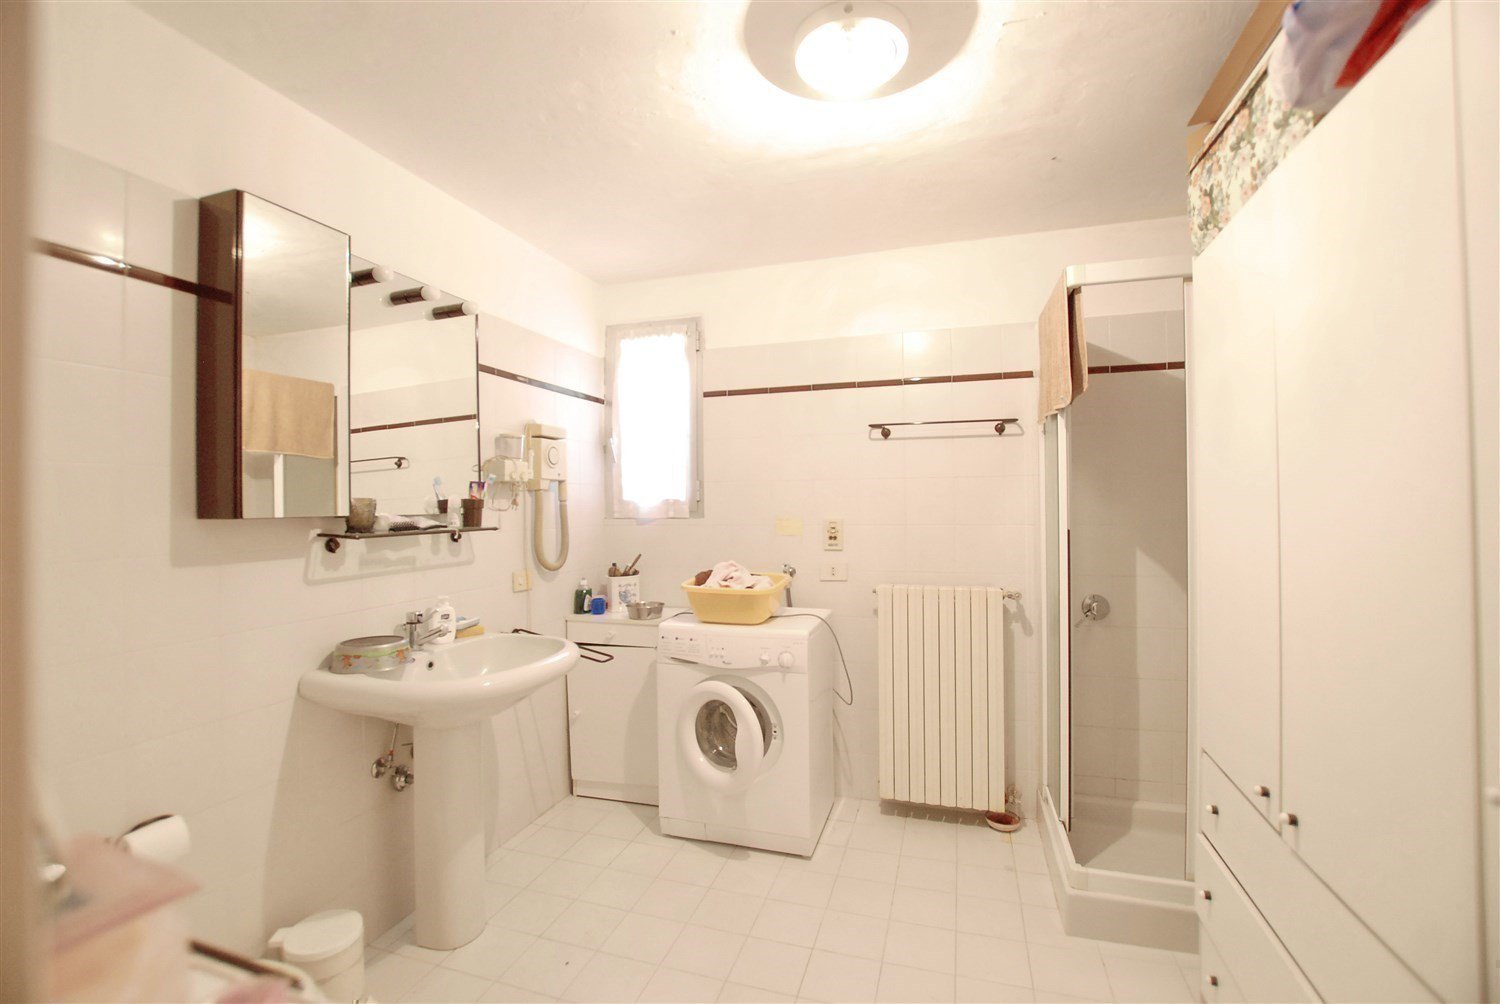 Terraced house for sale in Gignese, based in Vezzo - bathroom